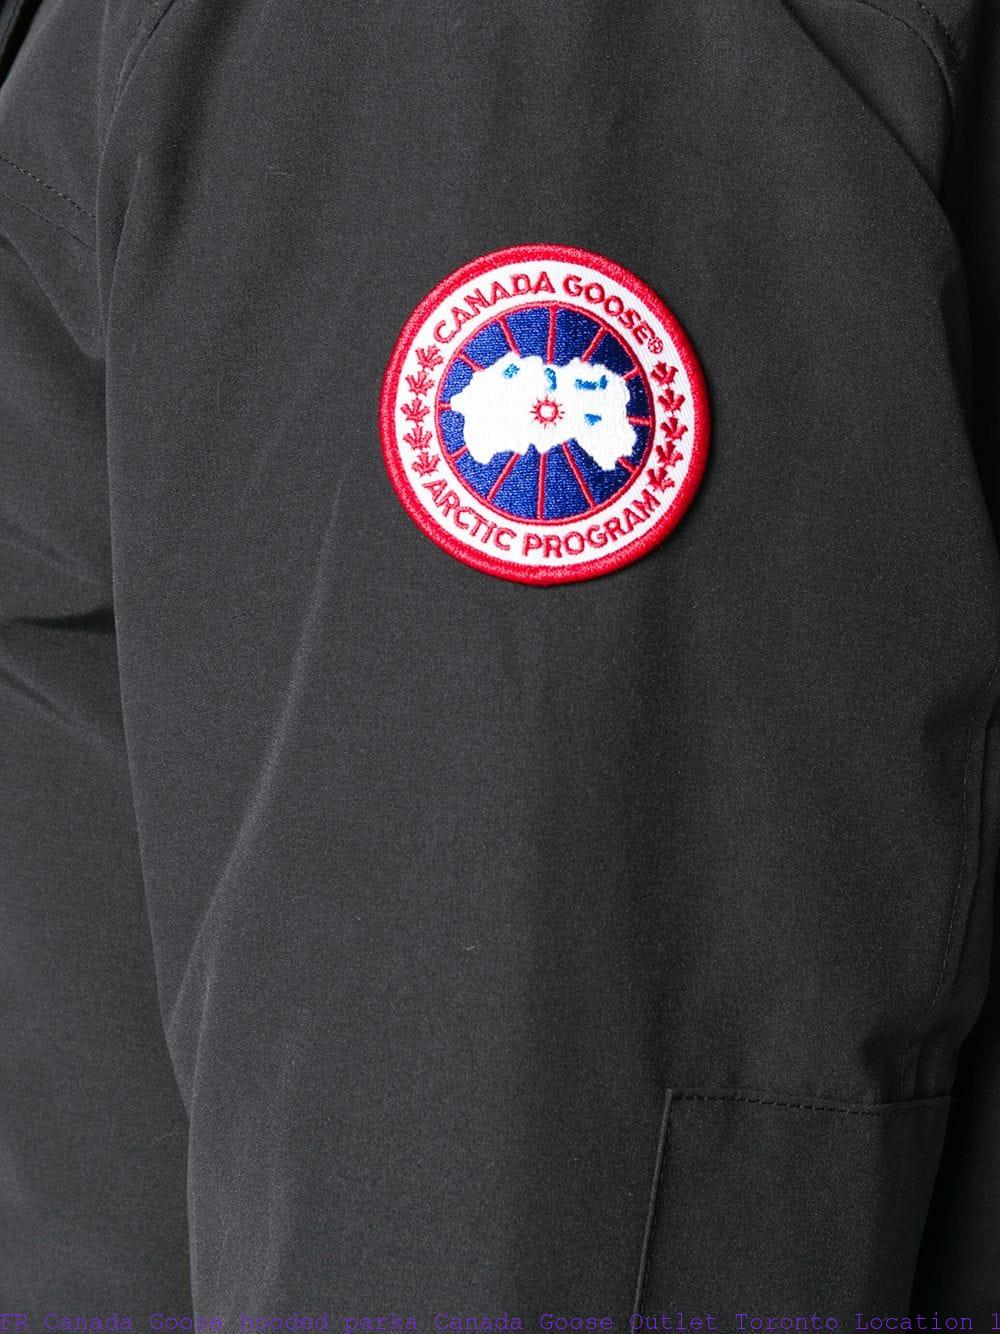 0b55c76131d FR Canada Goose hooded parka Canada Goose Outlet Toronto Location 13291038